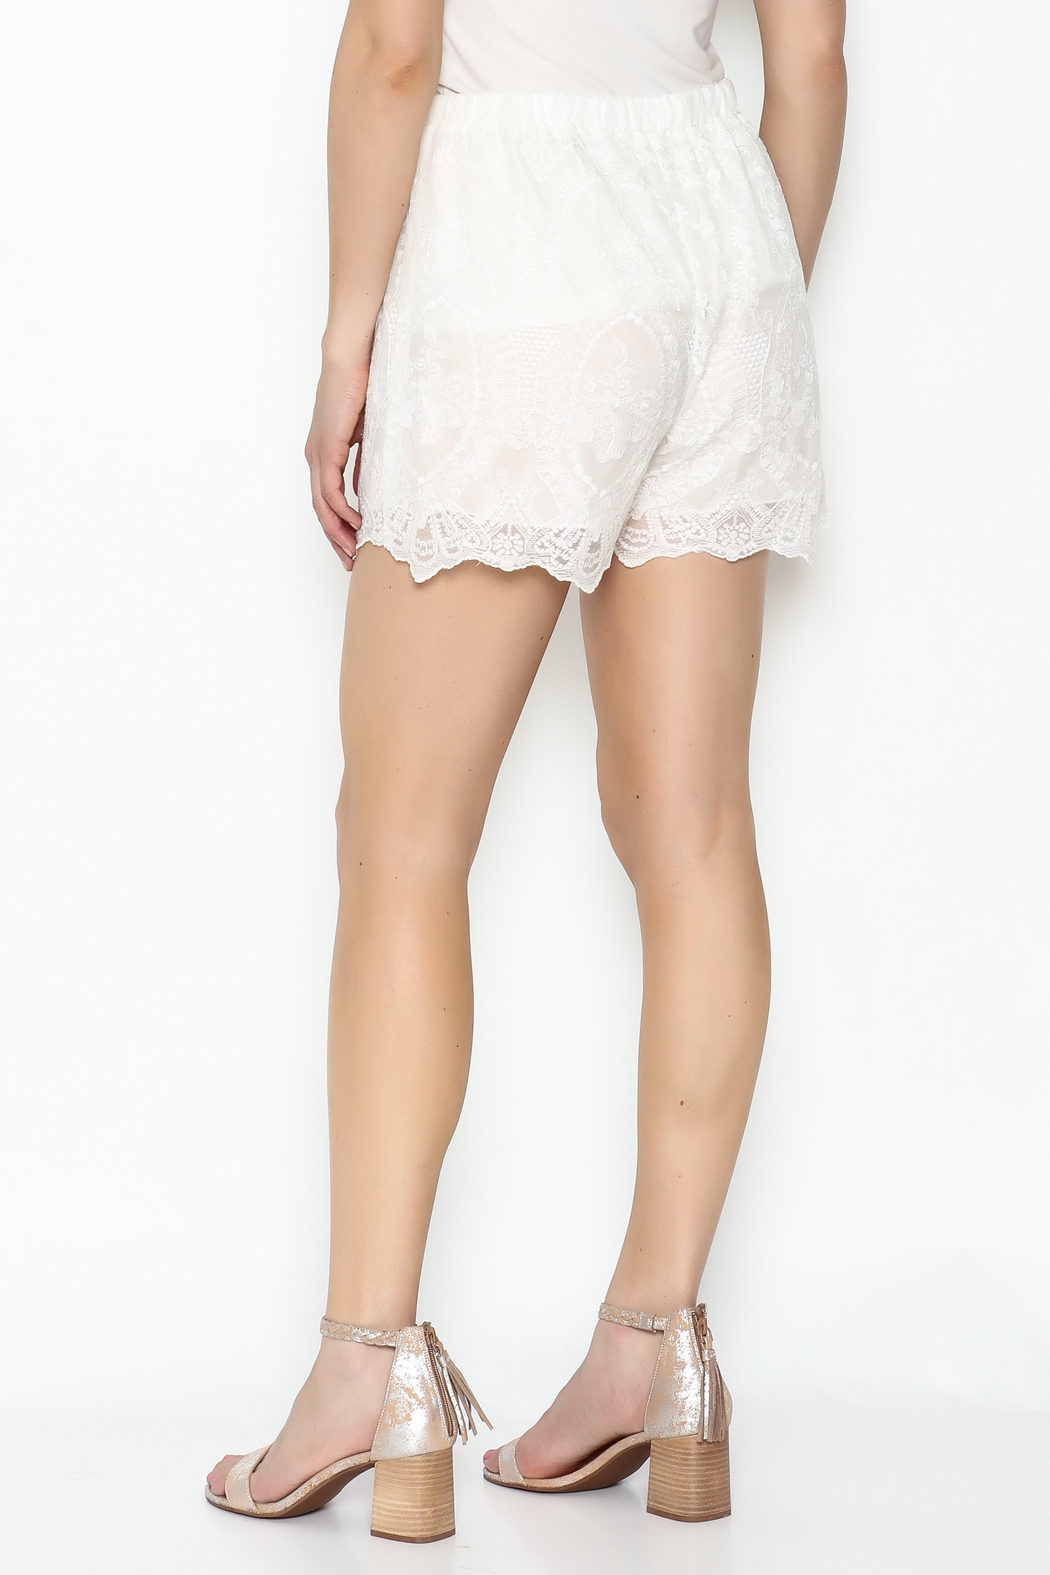 Love & Liberty Mamie Shorts - Back Cropped Image